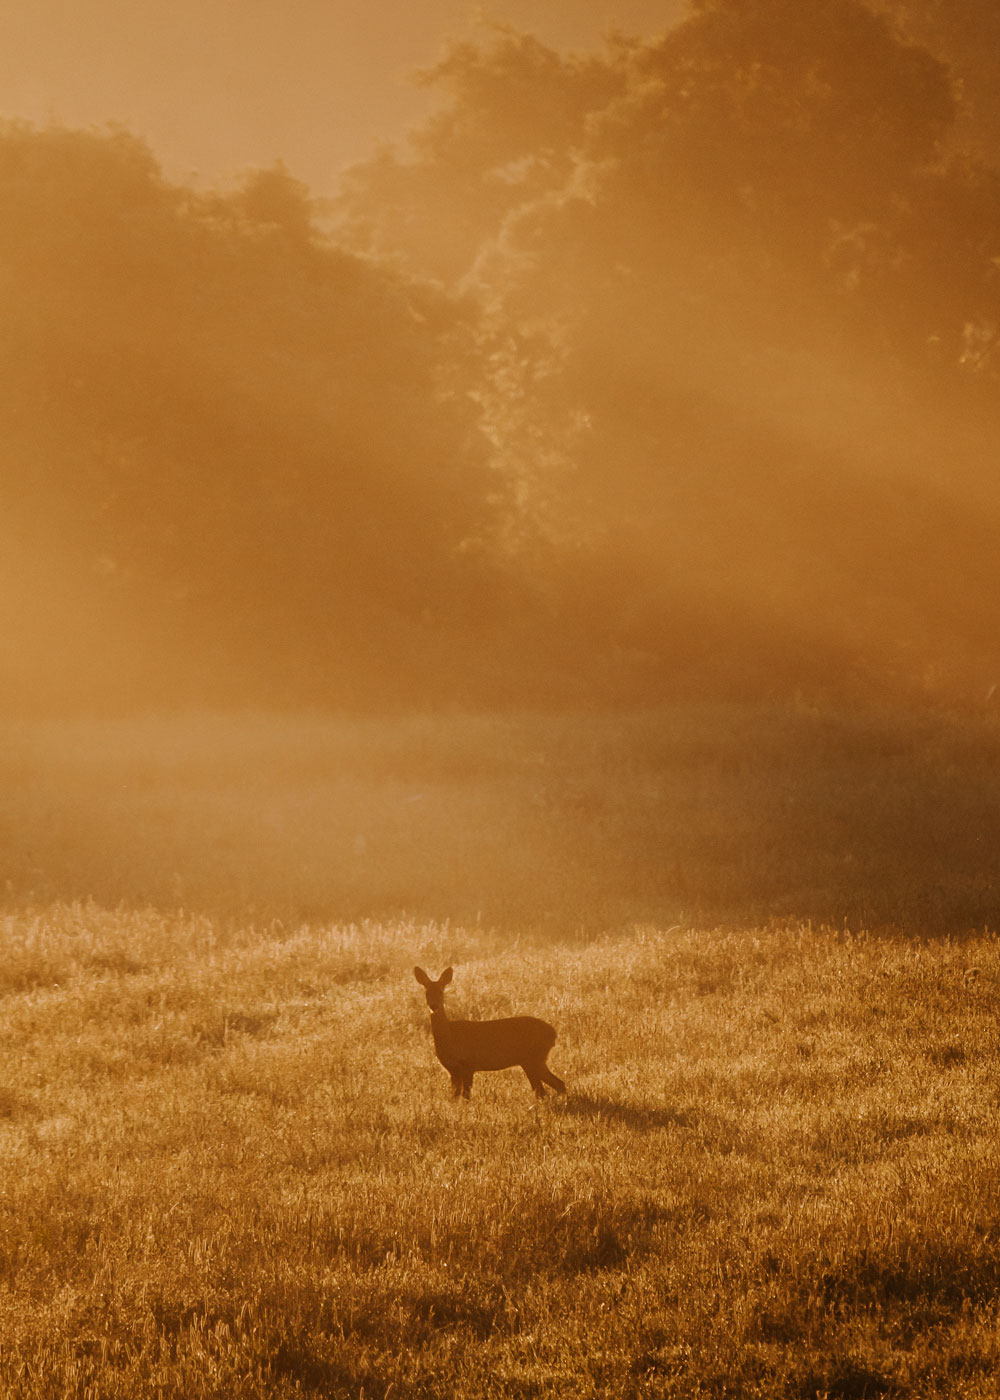 Roe deer in the morning sun